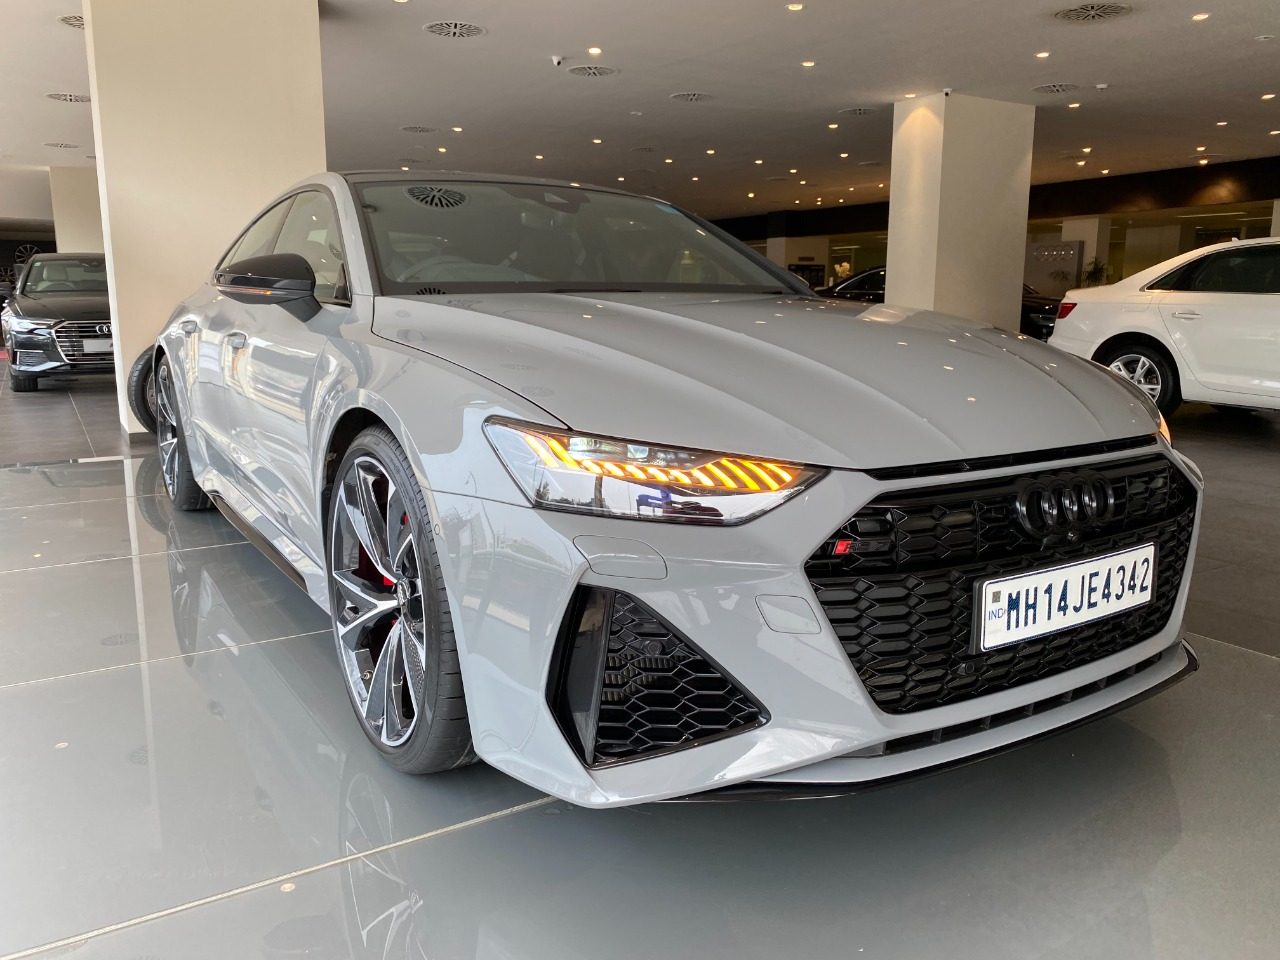 Audi Rs 7 Quattro 2020 Review Specs And Details In Hindi Namastecar